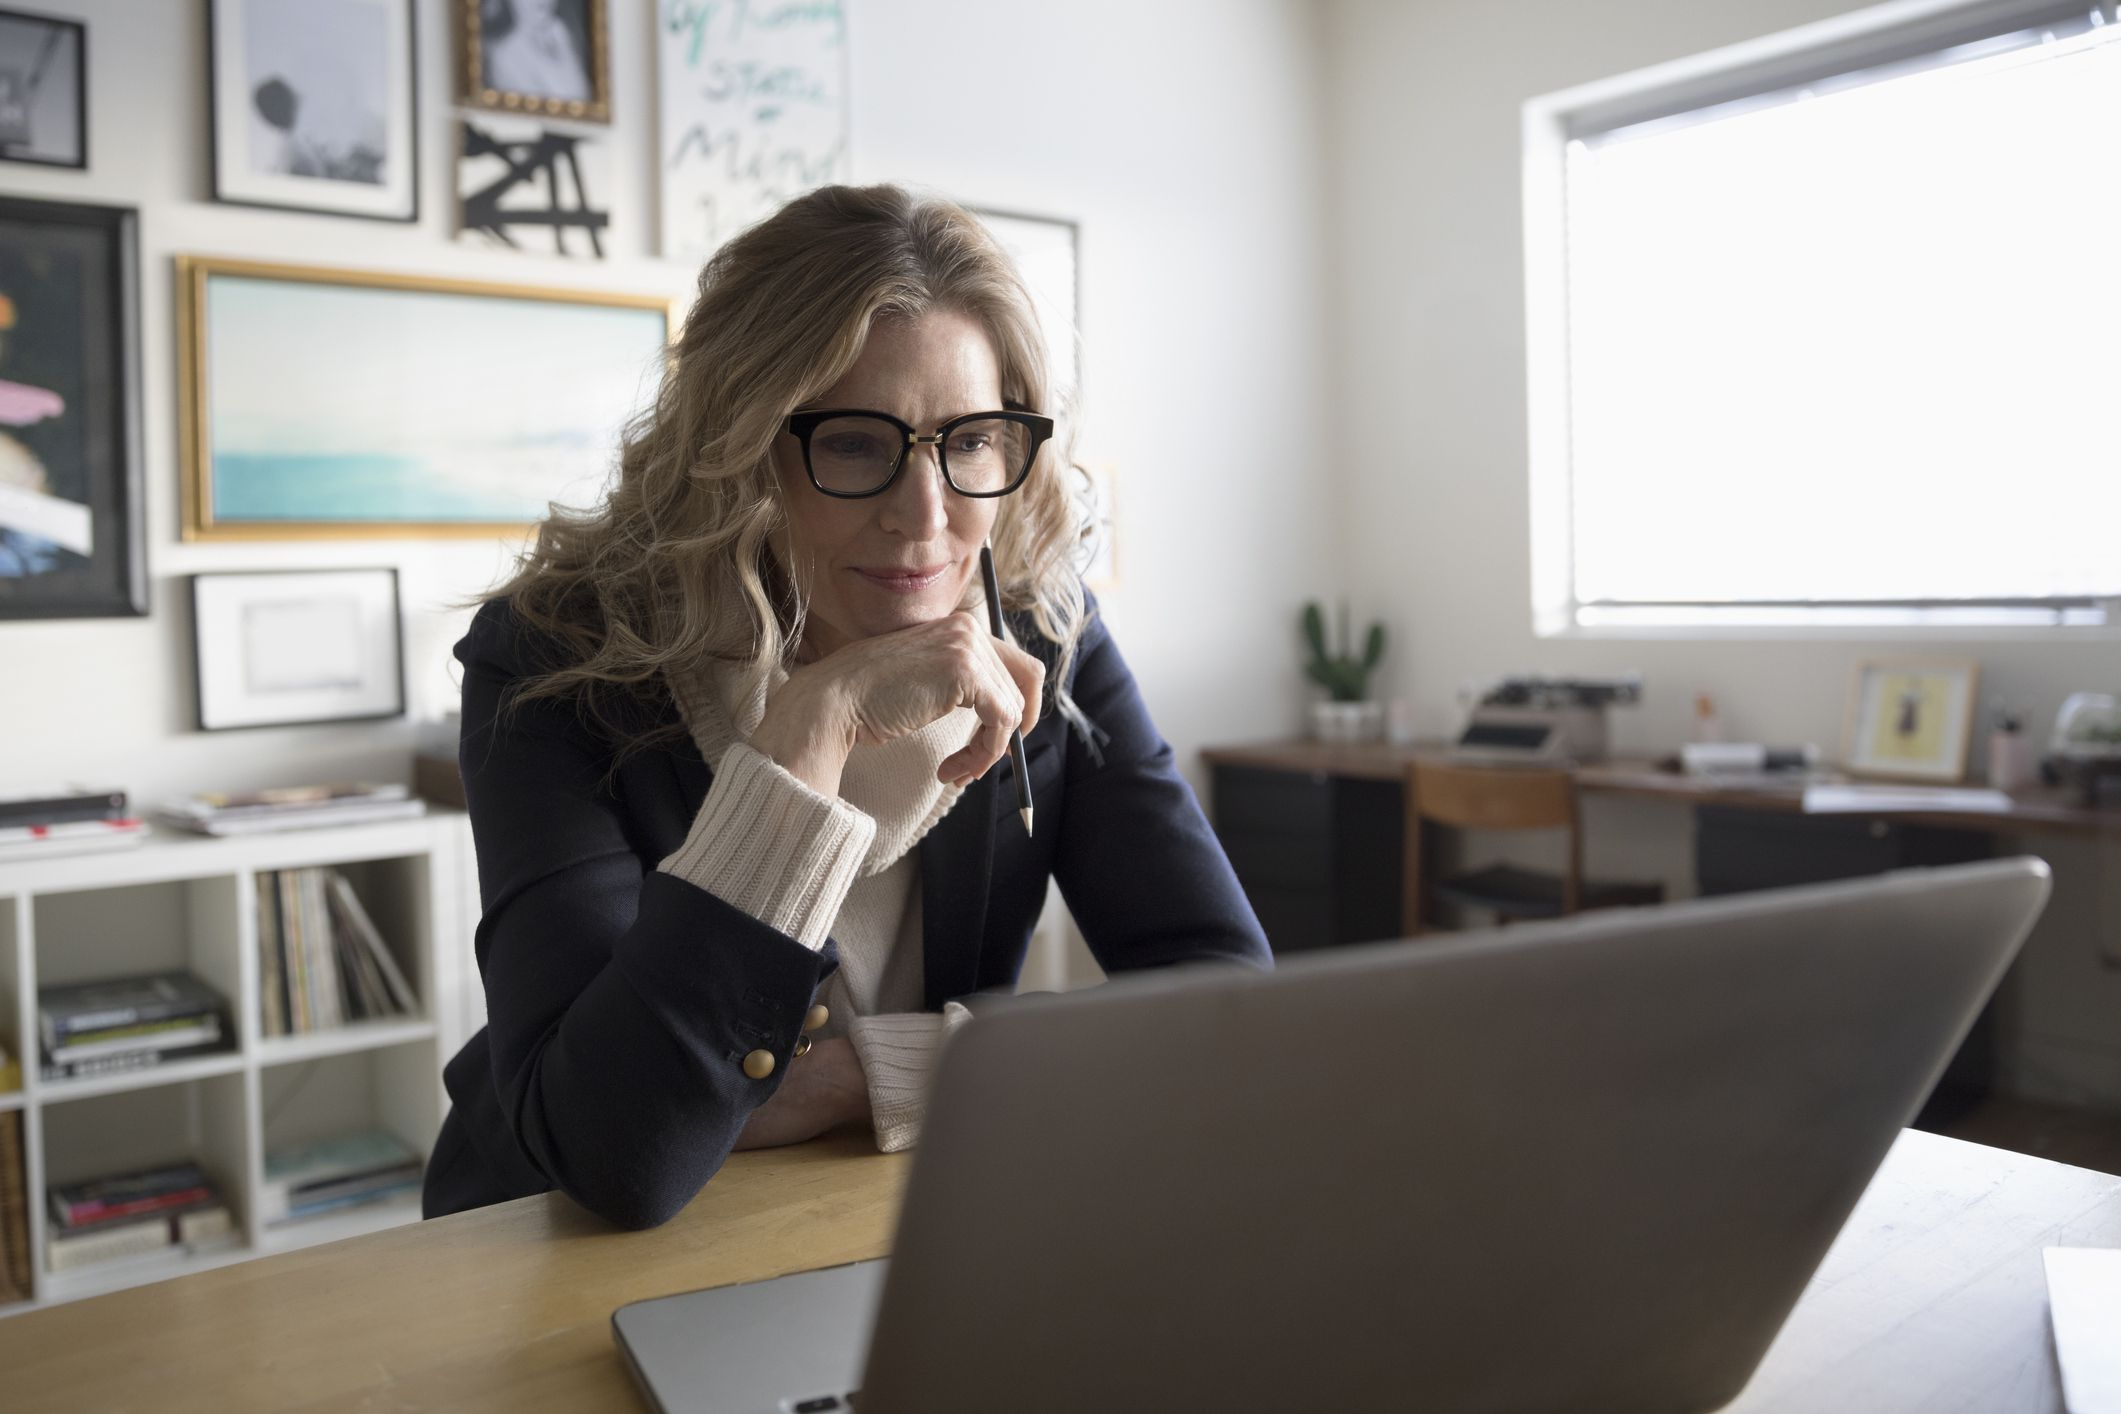 Top 10 Careers For Women Over 50